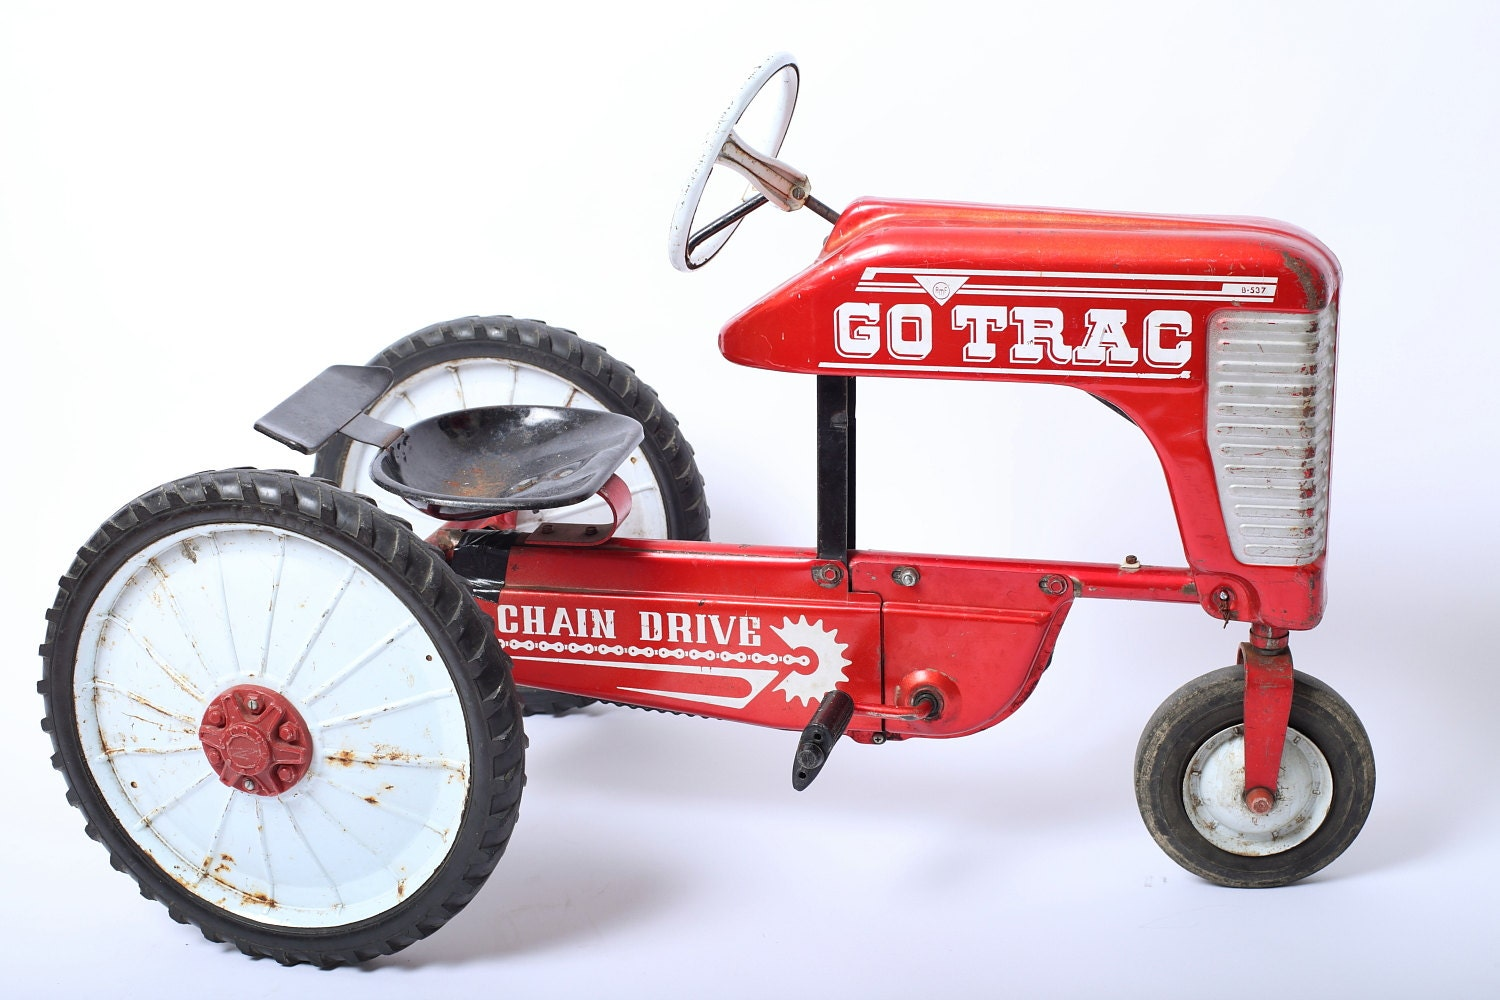 1960s Rare AMF Go Trac Red Tractor Children's Chain Drive Toy - ThisIsAGhostTown